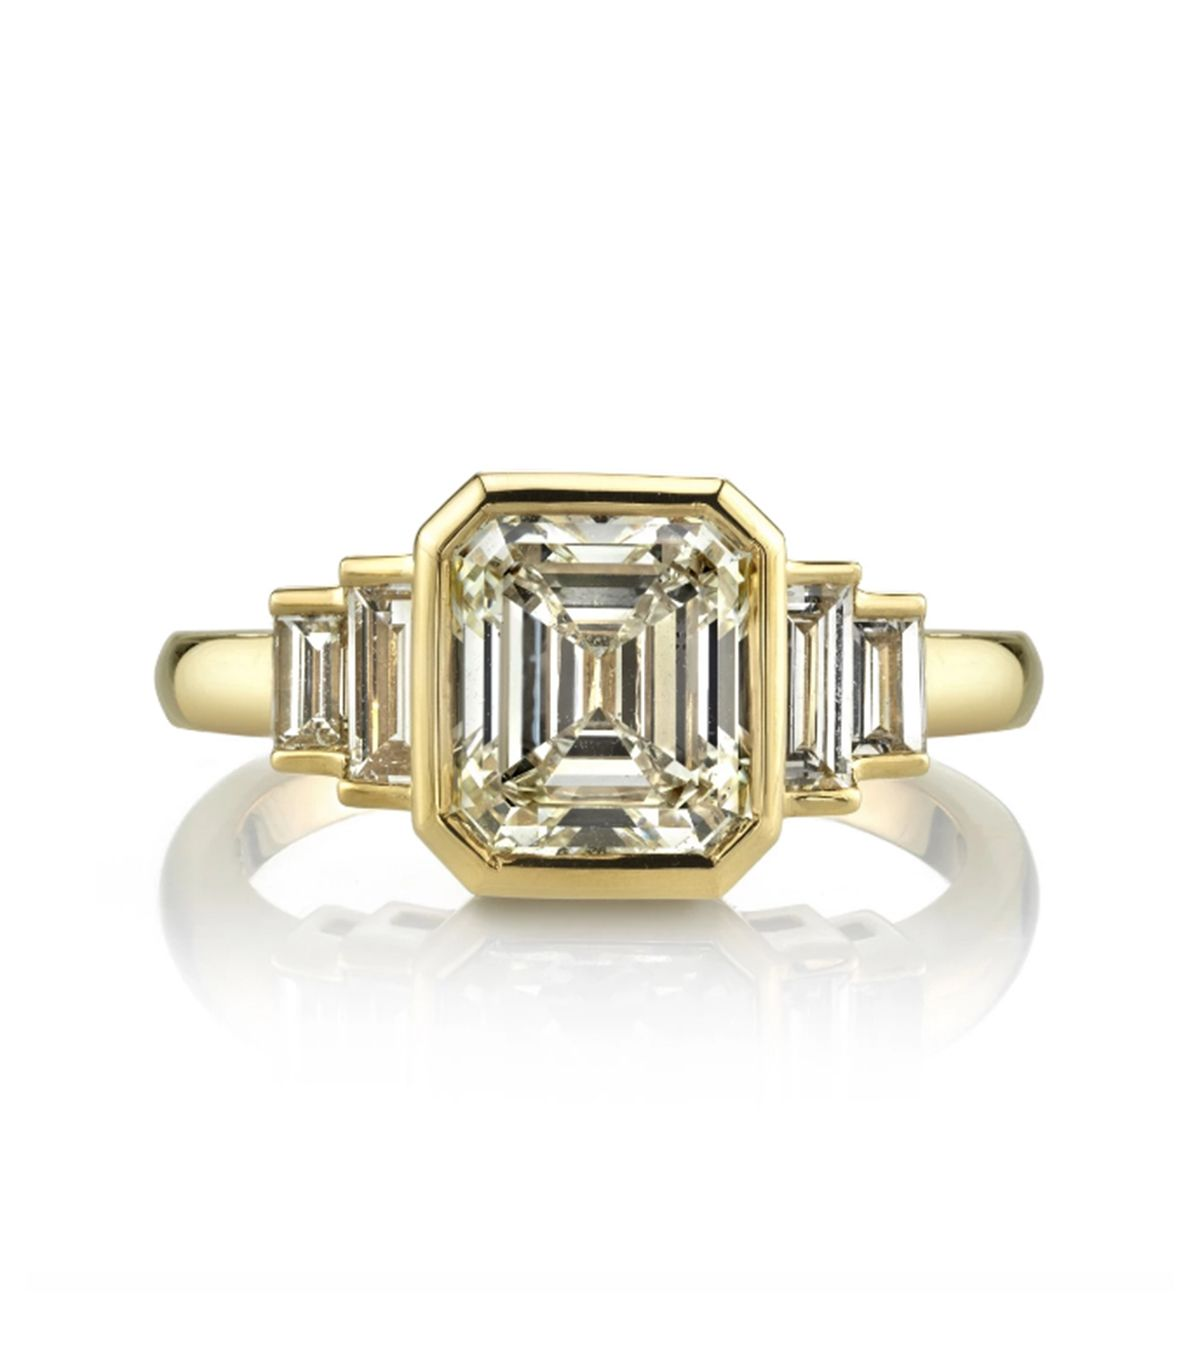 7 Things That Always Make an Engagement Ring Look Cheap 8